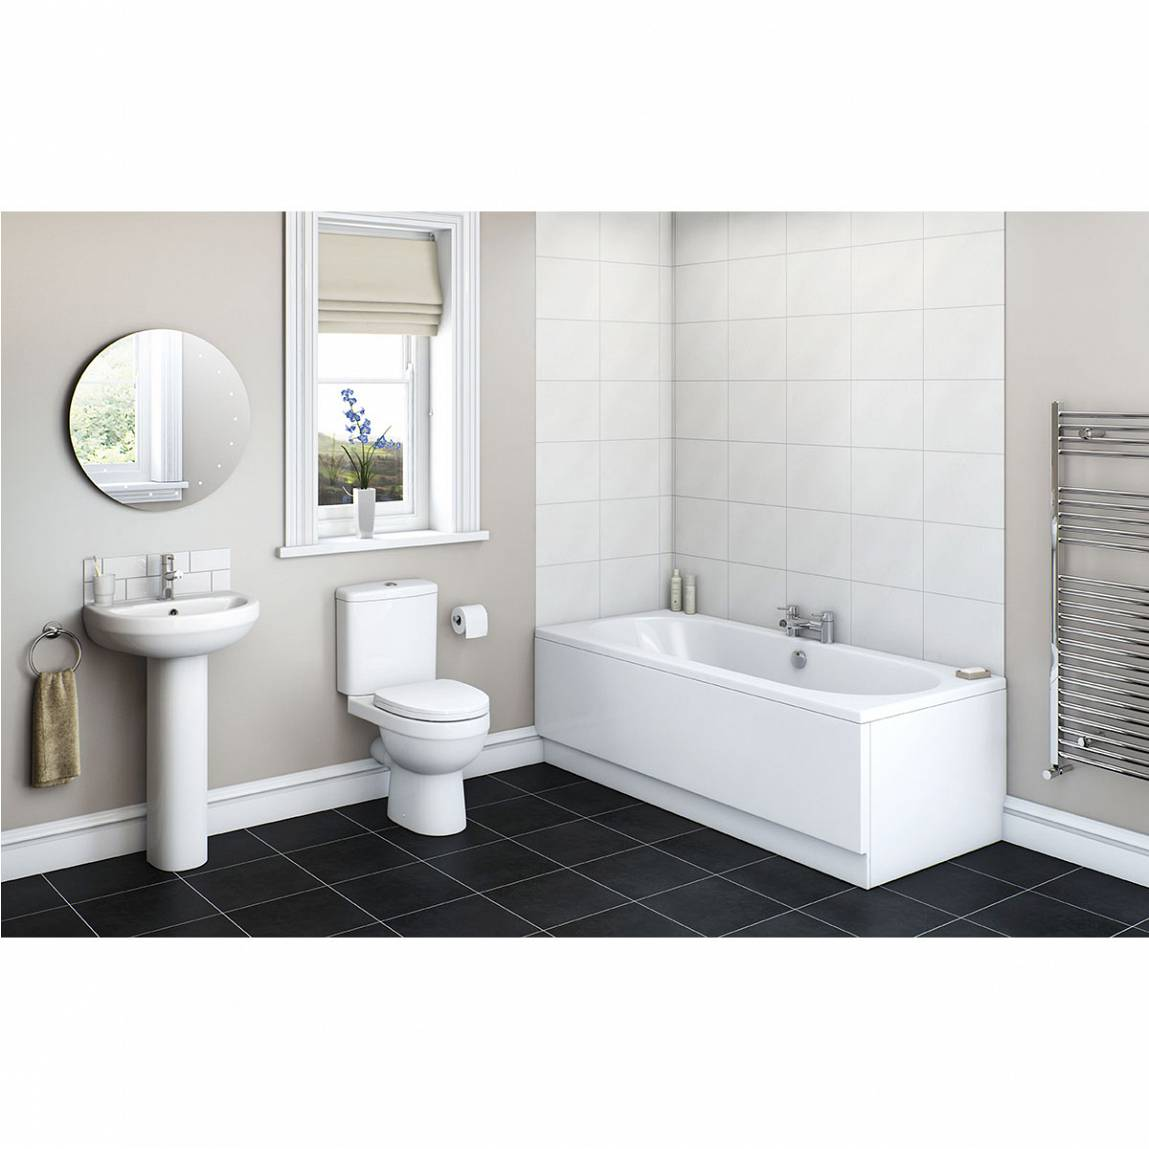 Image of Energy Bathroom Set with Islington 1800 x 800 Bath Suite